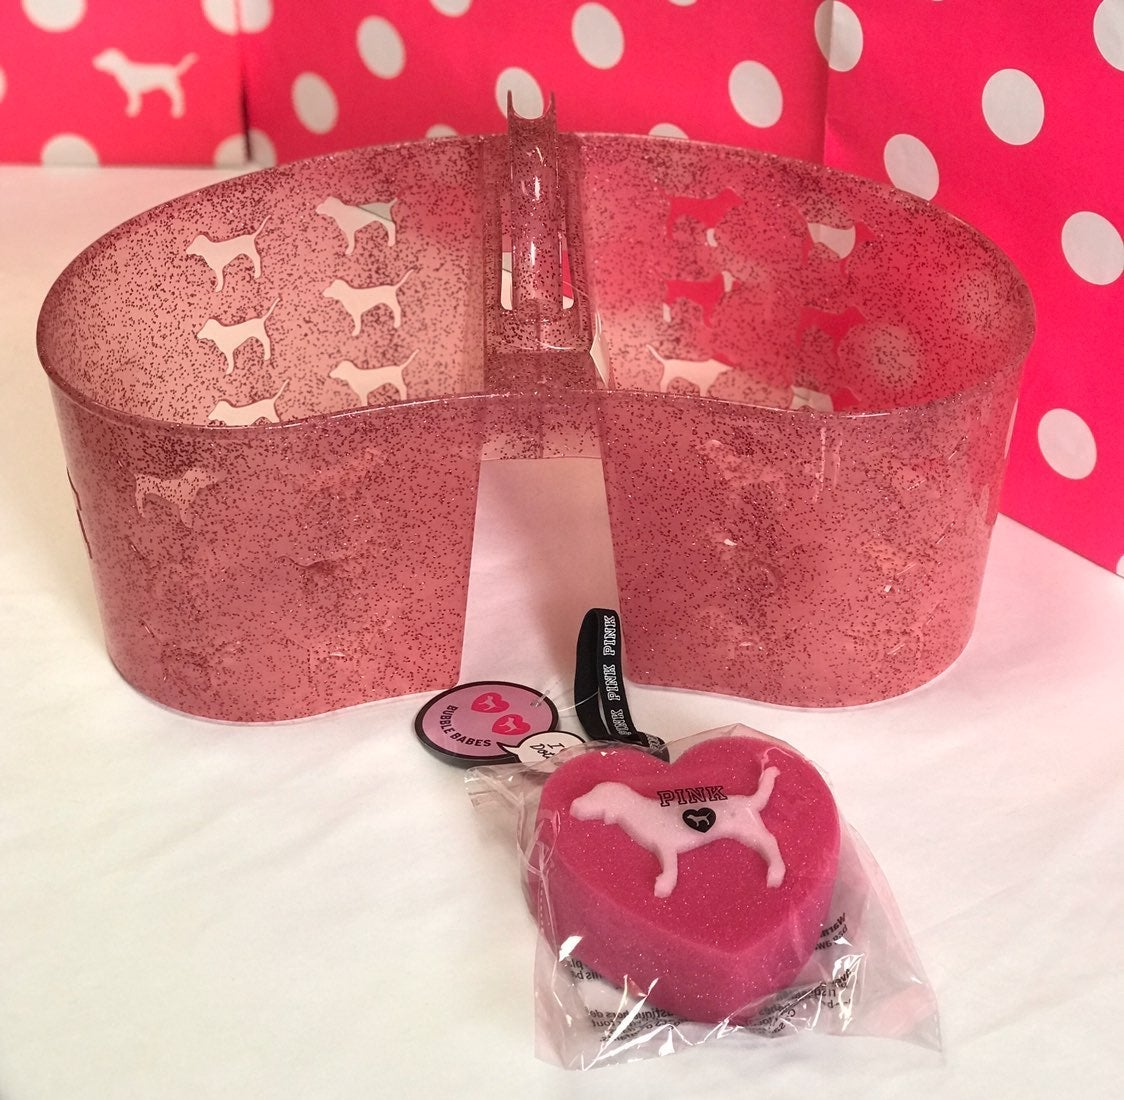 PINK Glitter Shower Caddy & Sponge